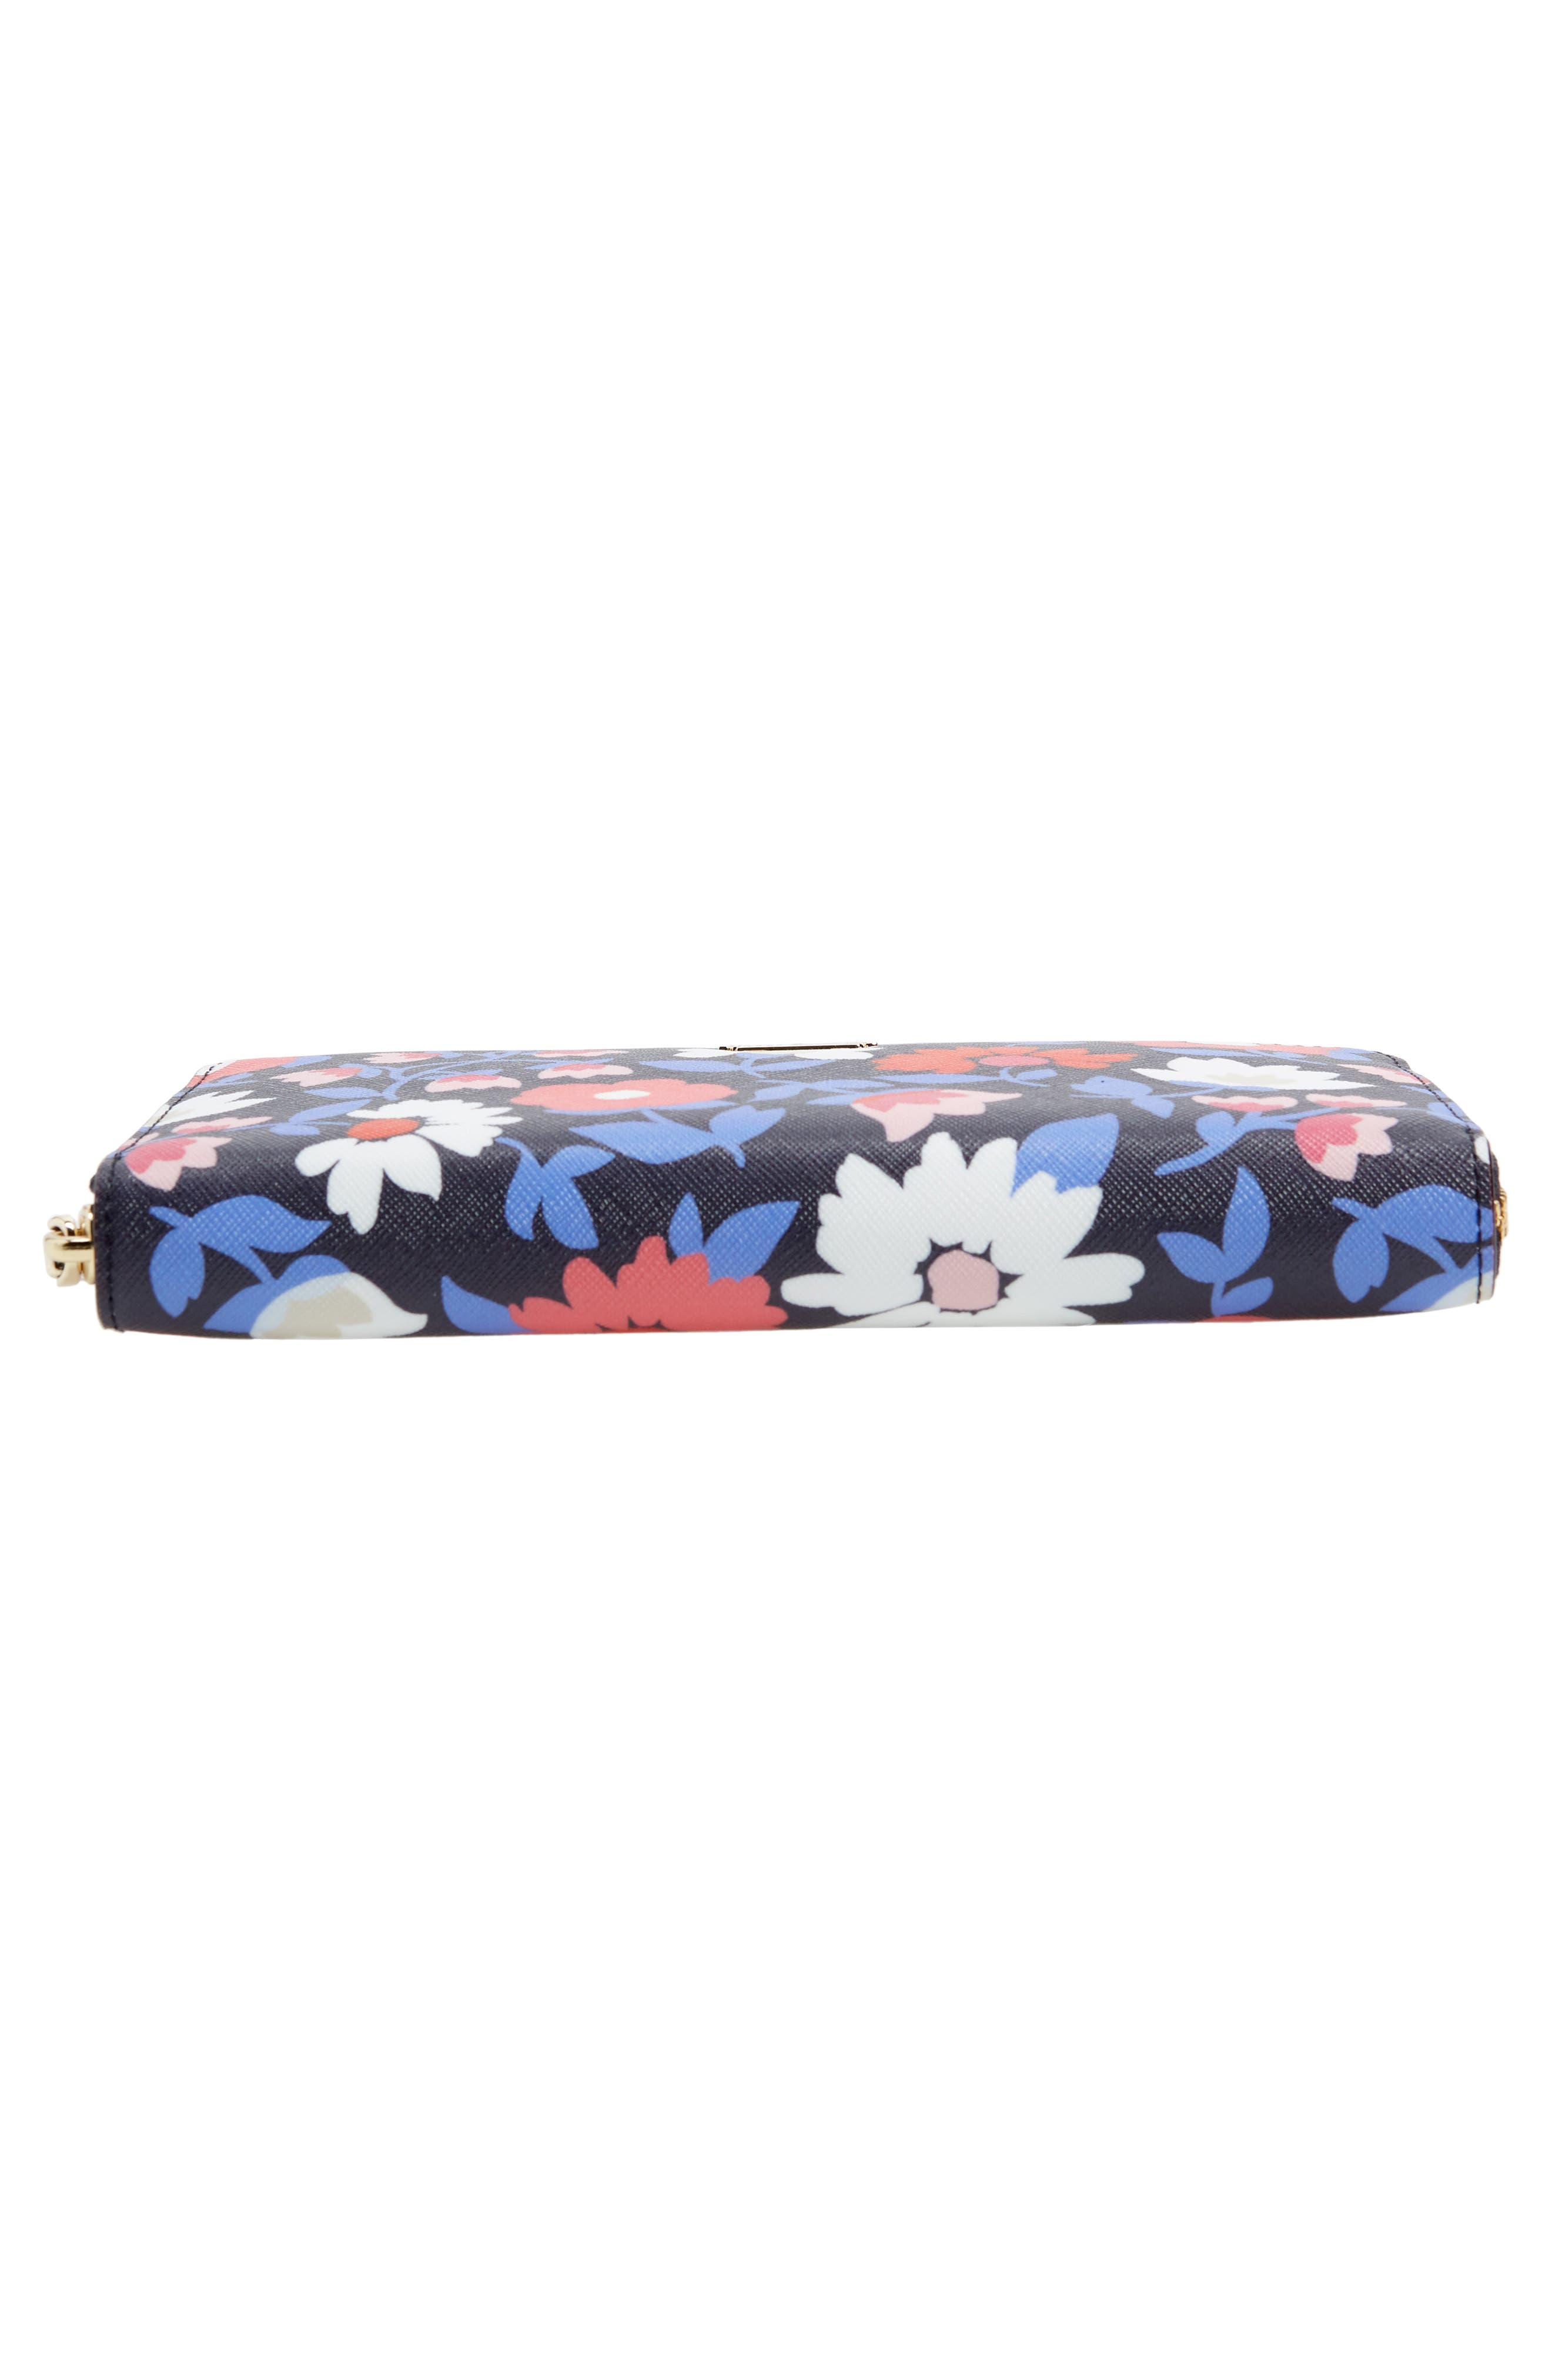 cameron street - daisy lacey zip around wallet,                             Alternate thumbnail 6, color,                             Multi